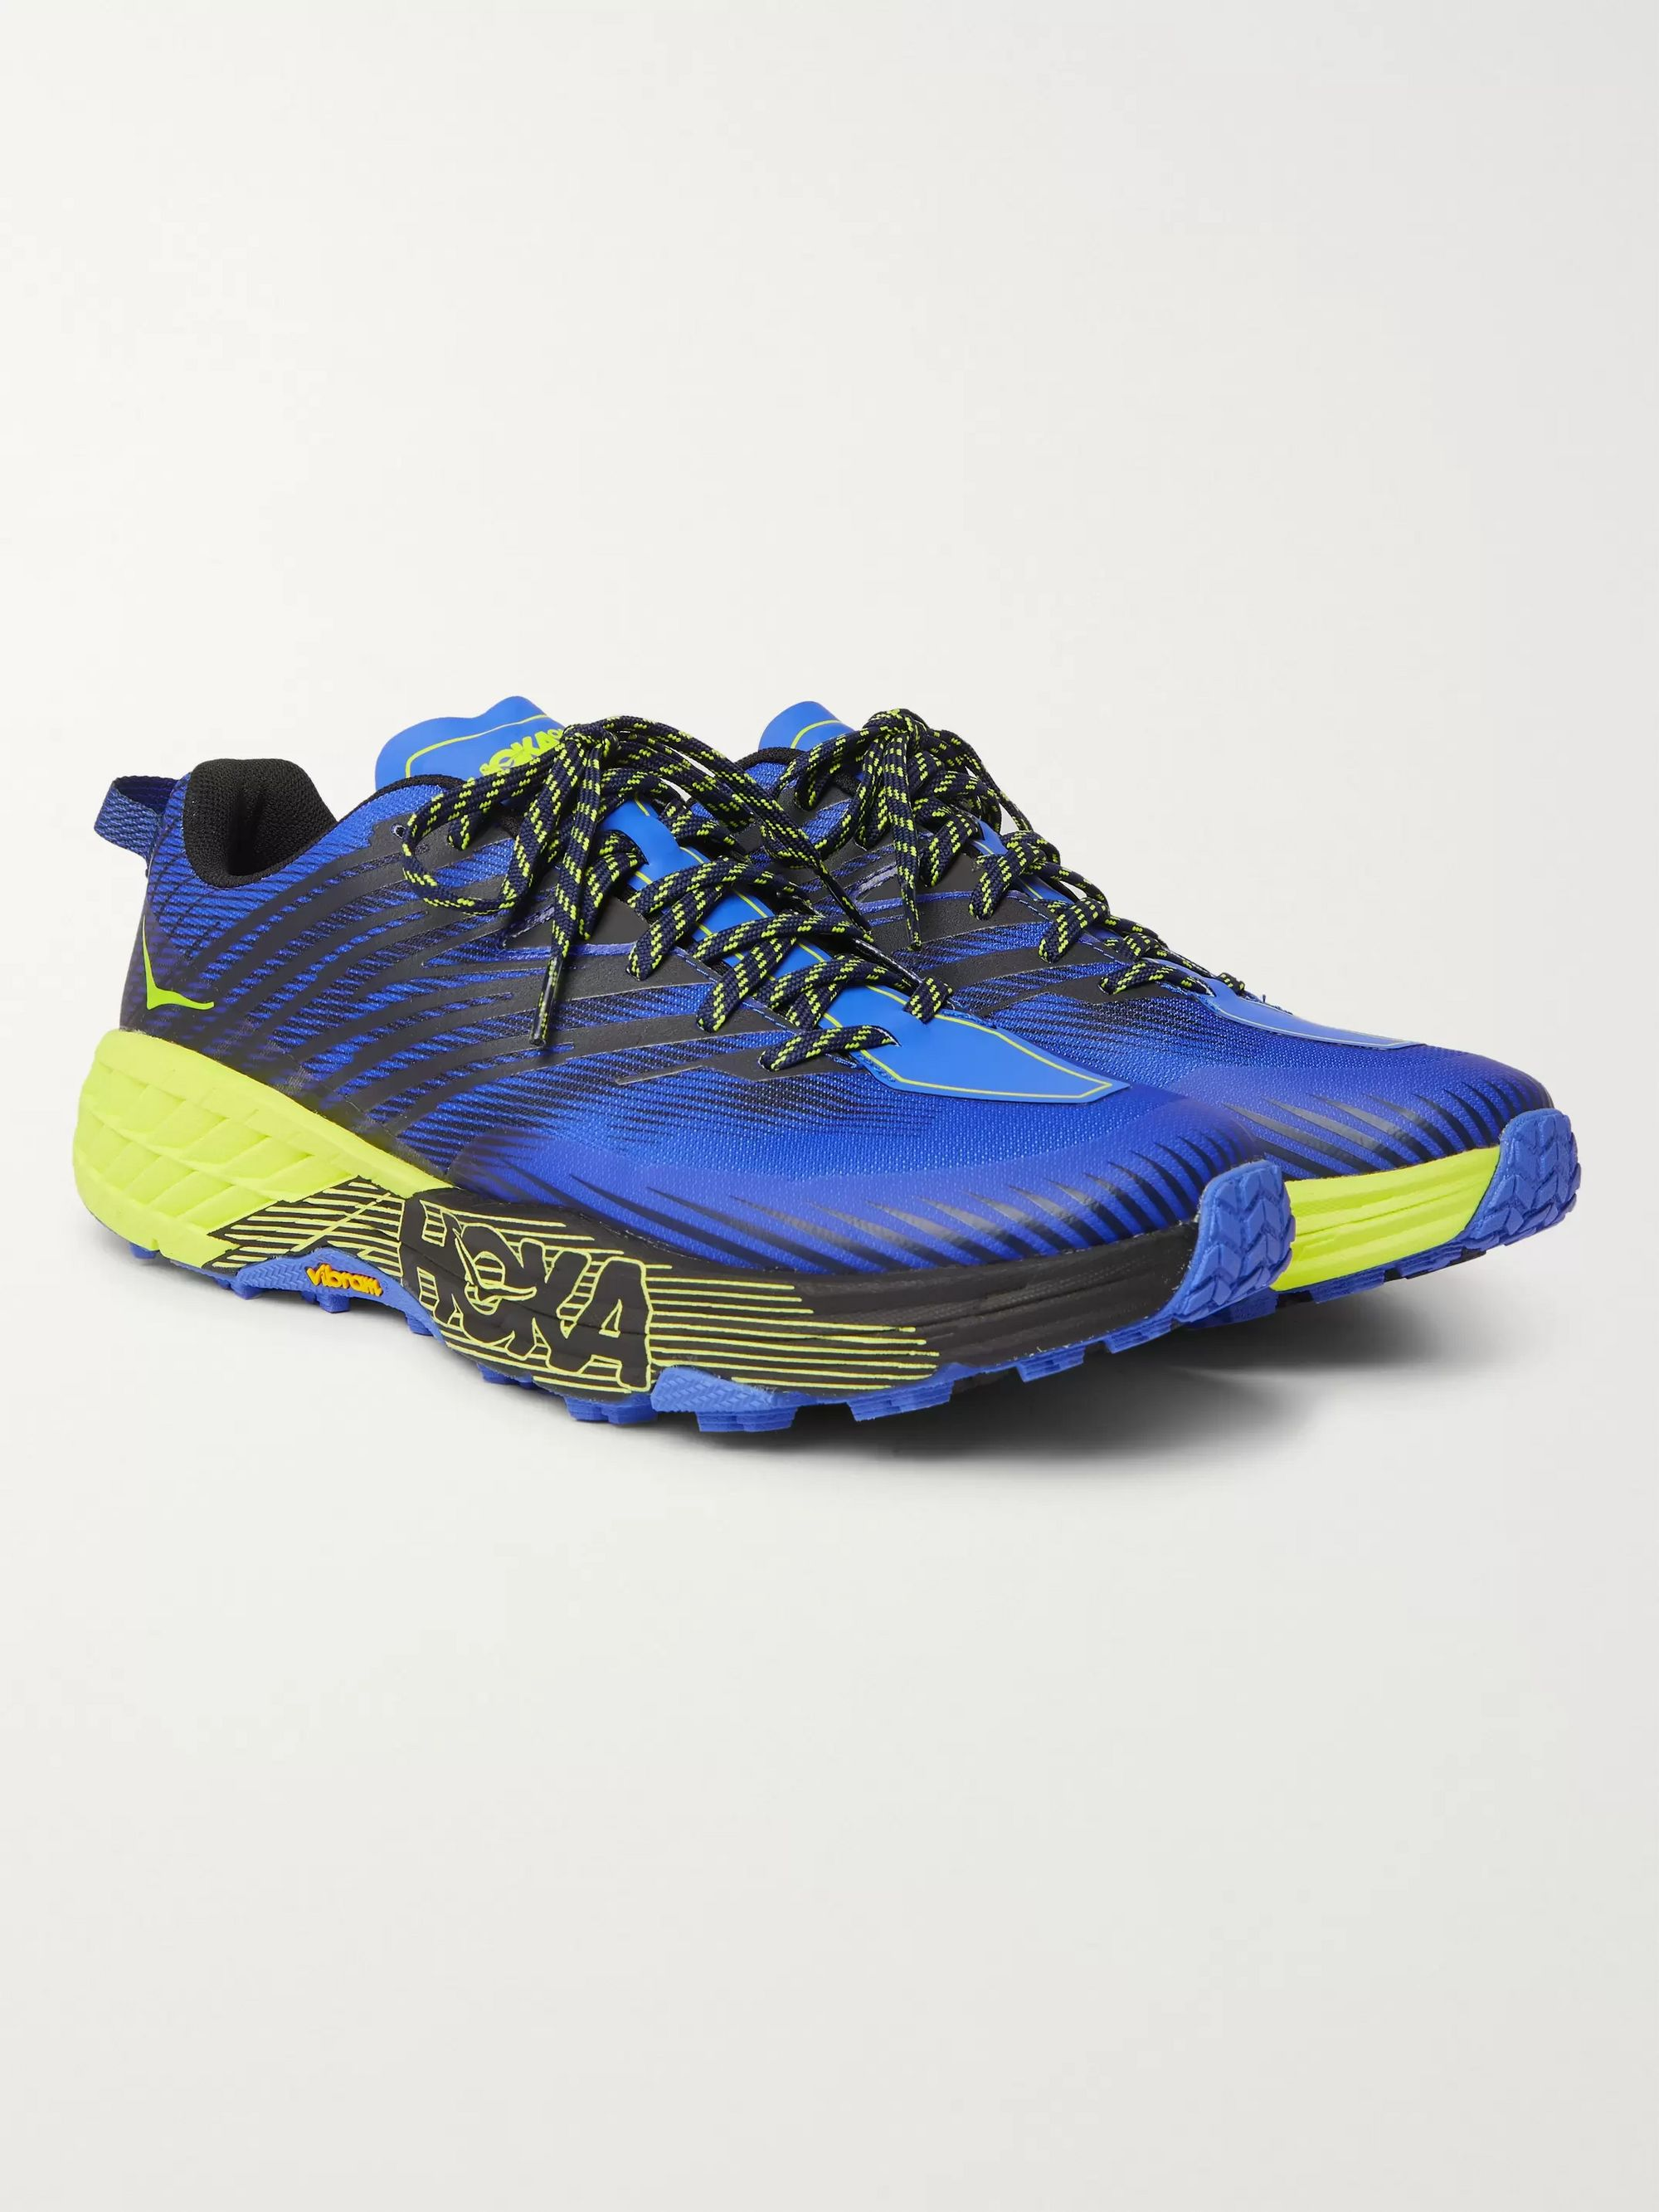 Hoka One One Speedgoat 4 Mesh Trail Running Sneakers